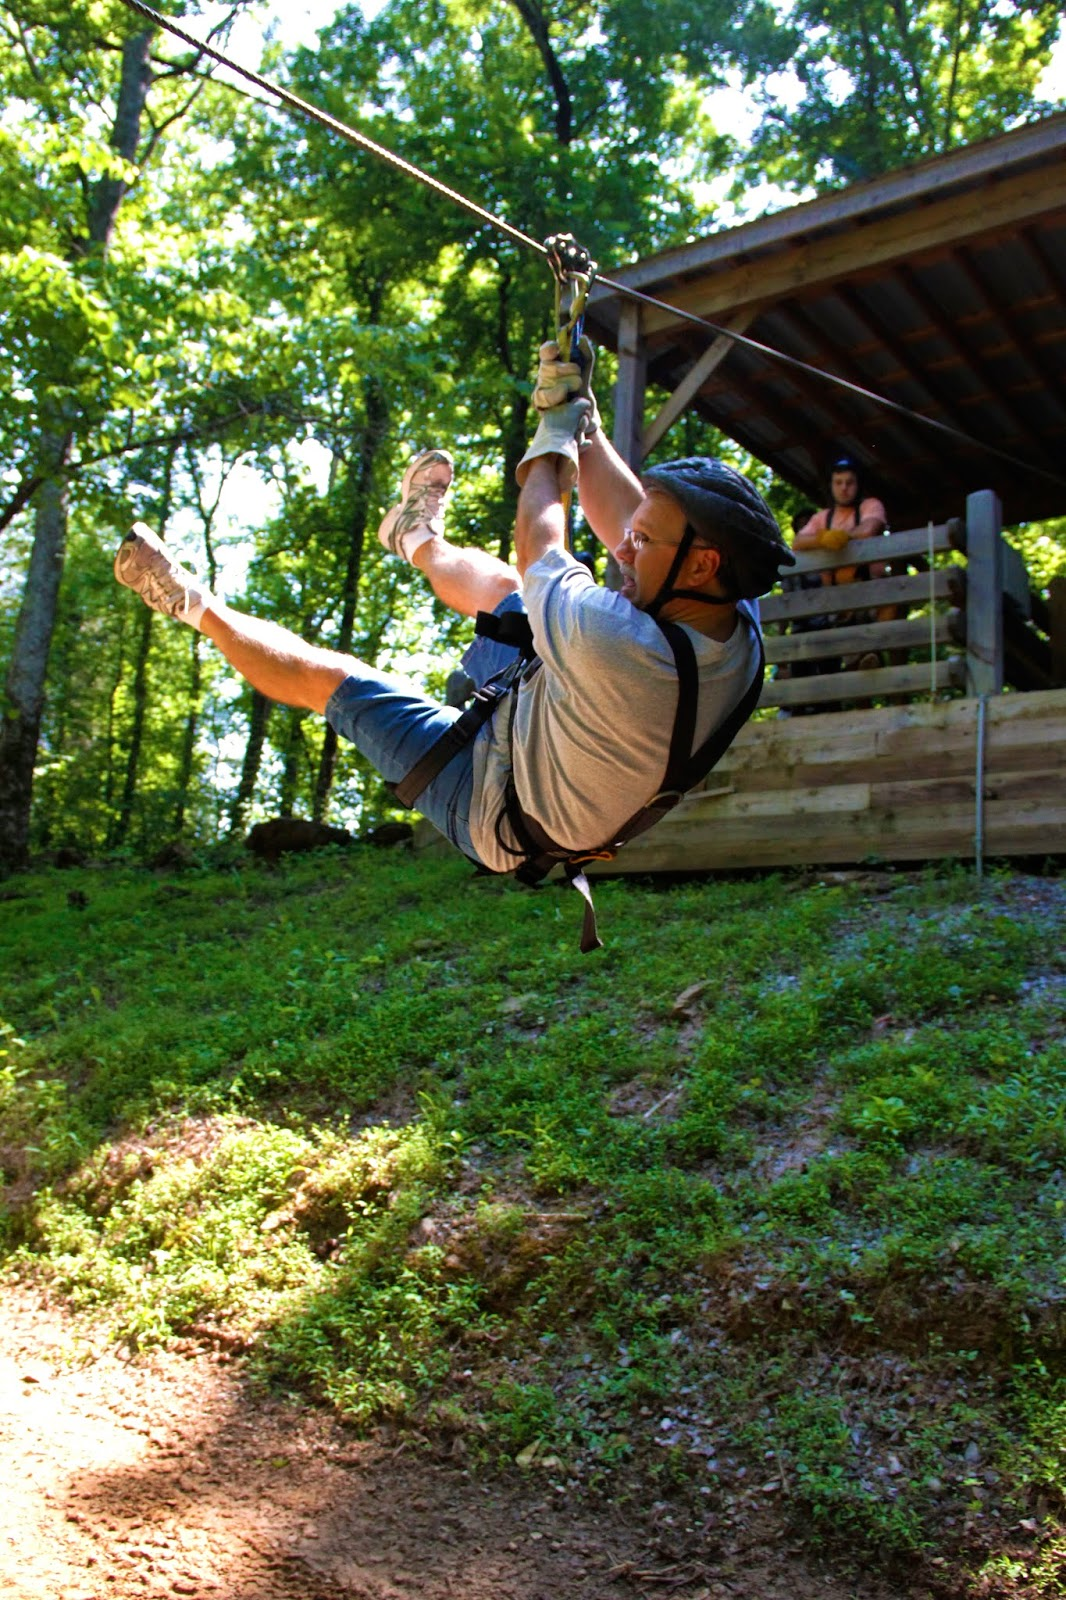 Extreme outdoor adventures near Pigeon Forge, TN